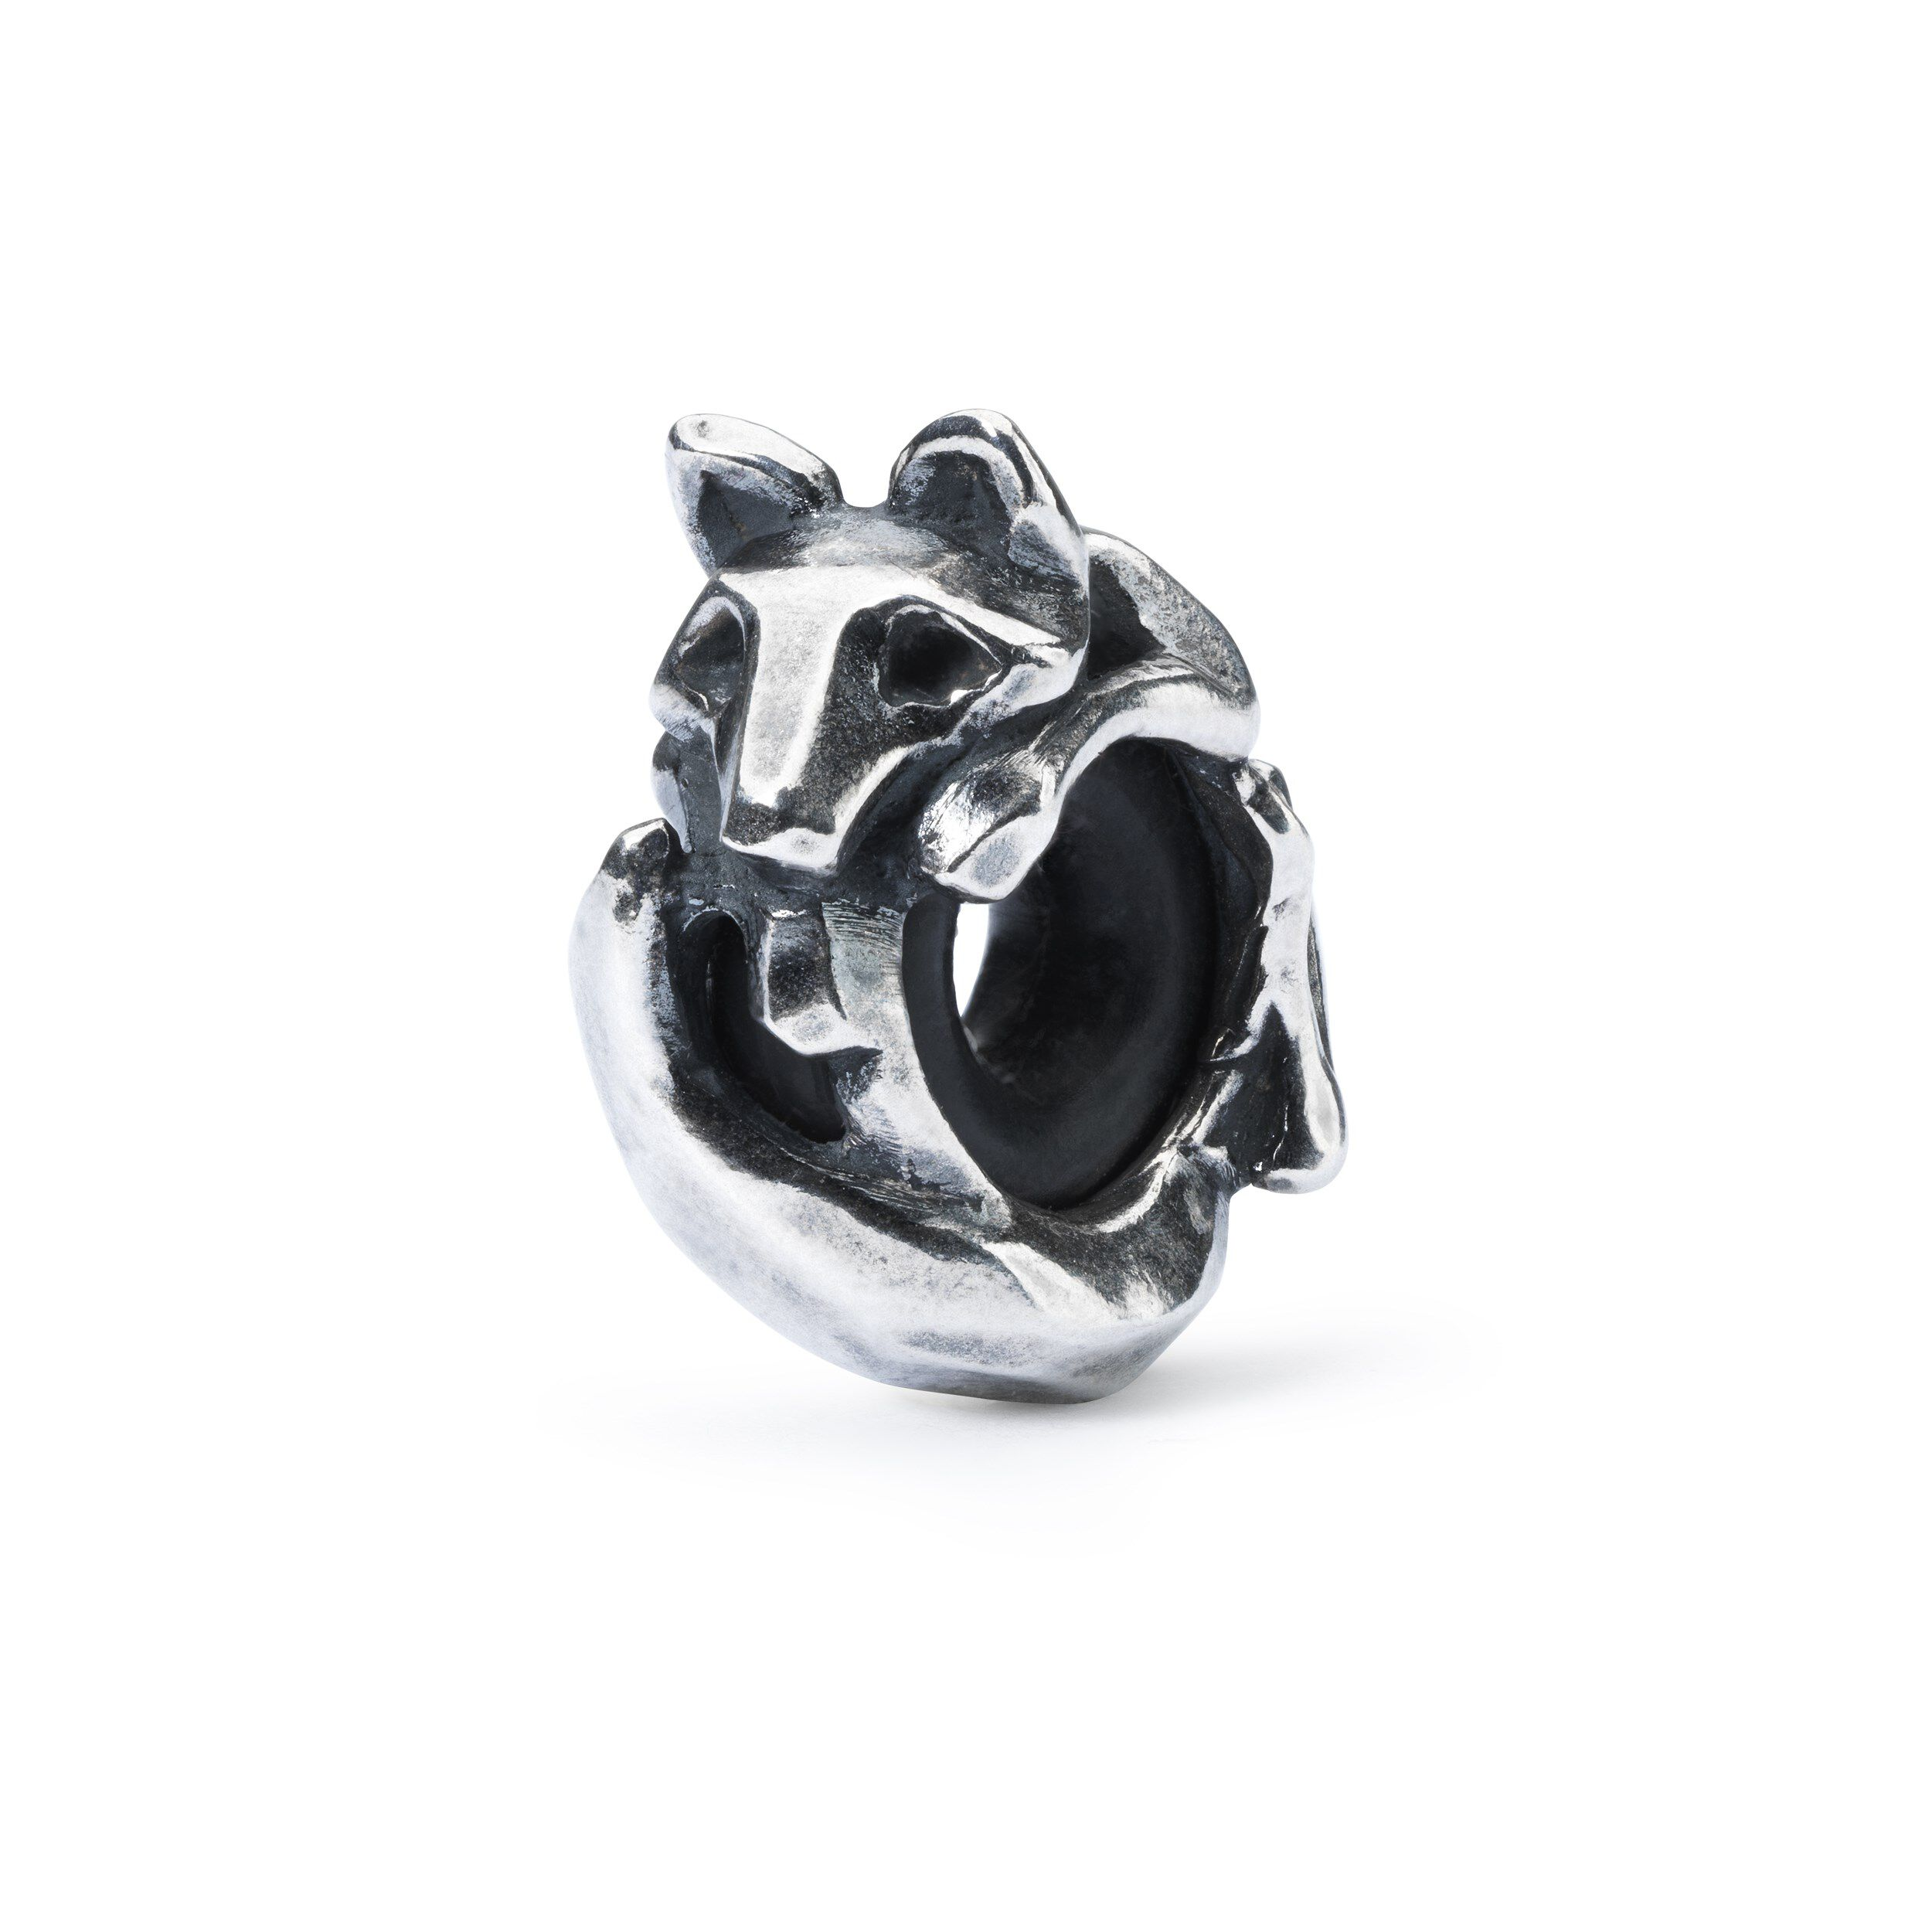 Trollbeads Women Silver Charm Spacer - TAGBE-20173 sNFld9AP